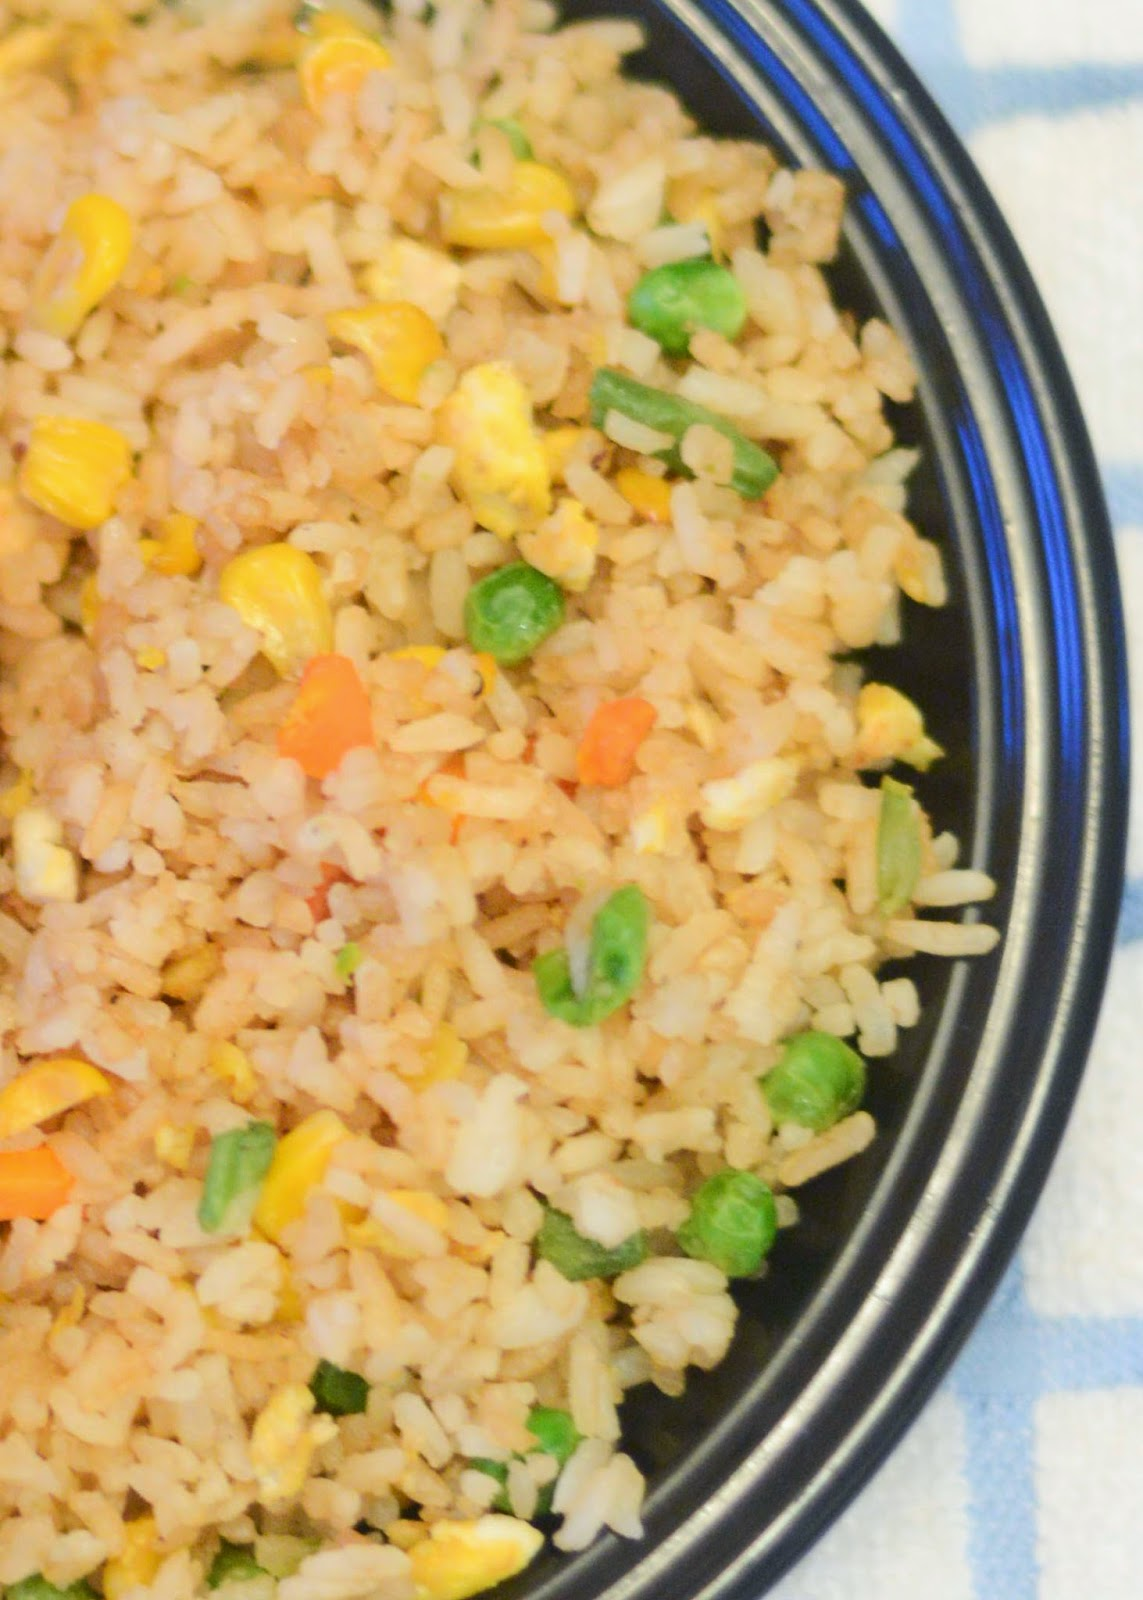 Quick and easy chicken fried rice recipe